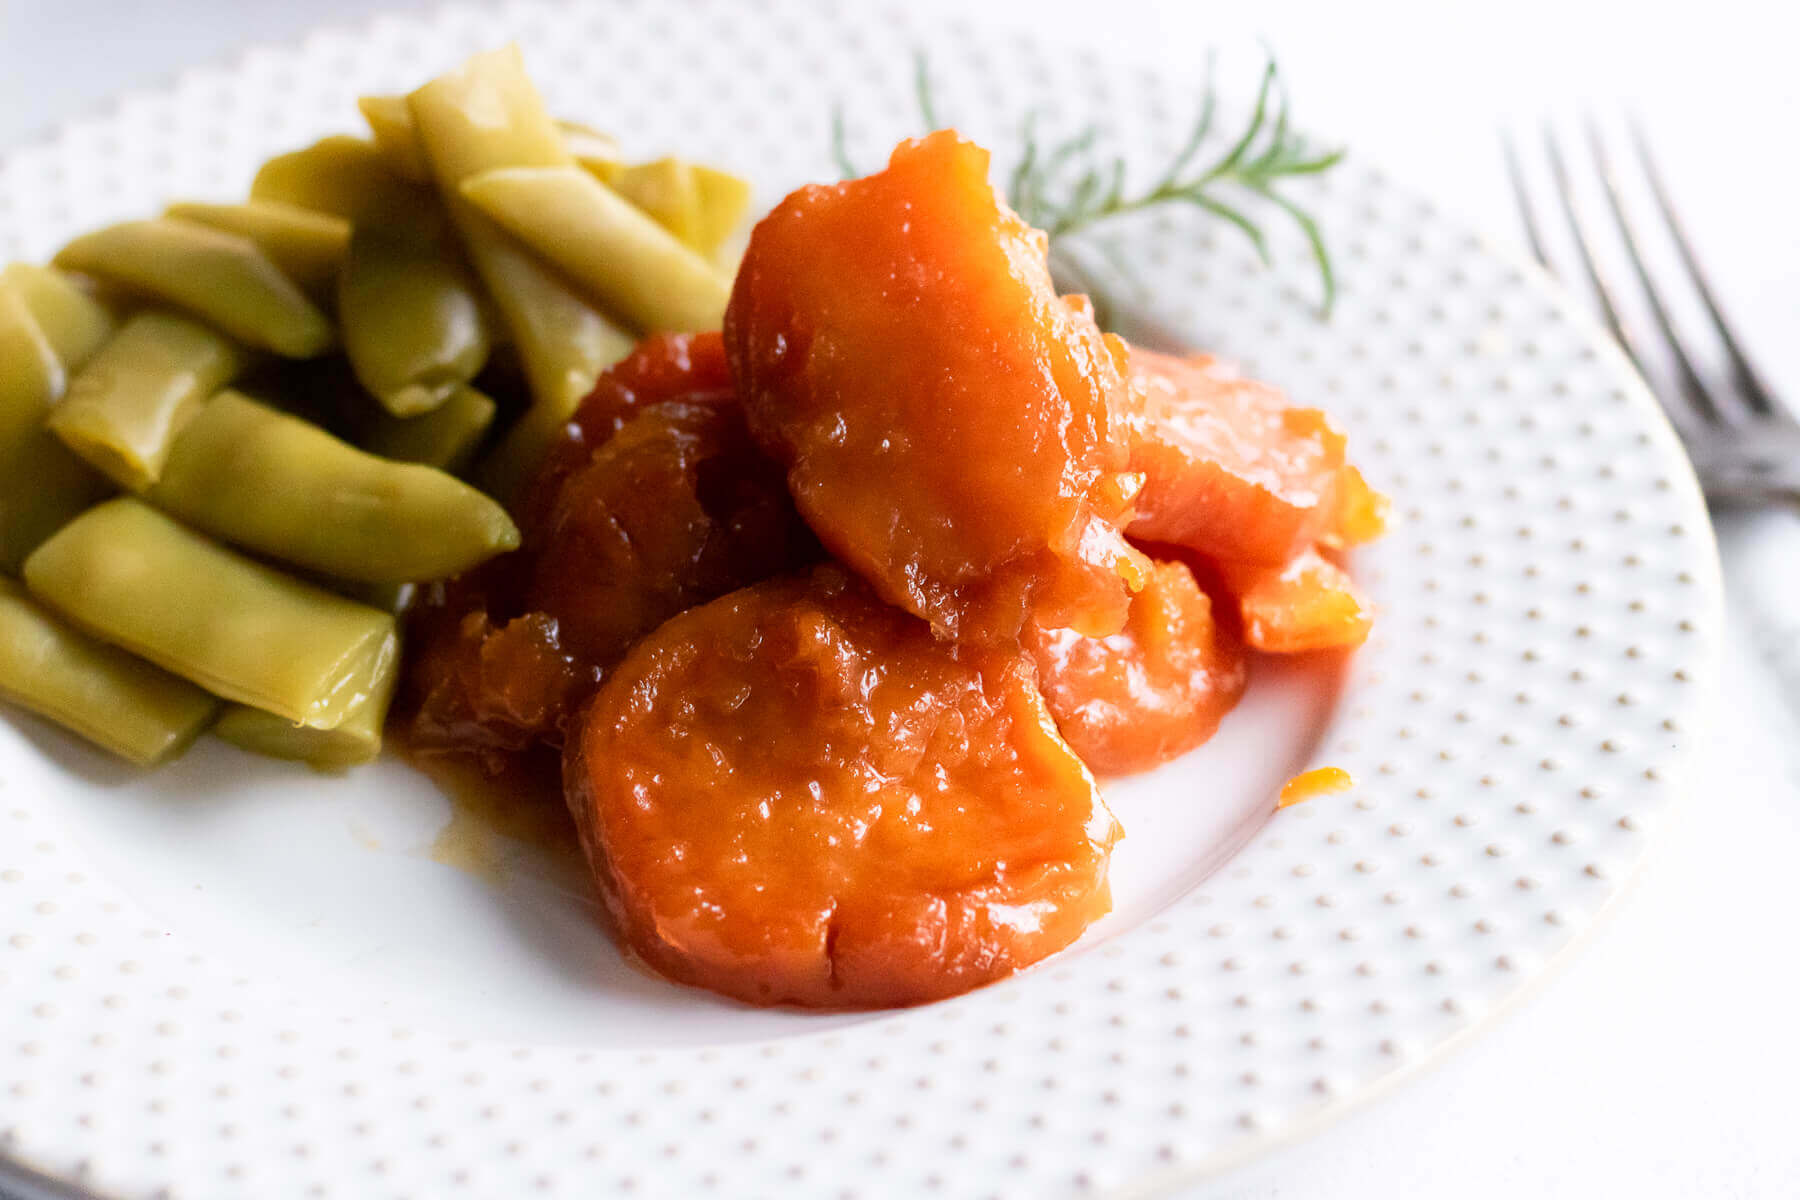 Candied Sweet Potatoes on white plate served with a side of green beans.